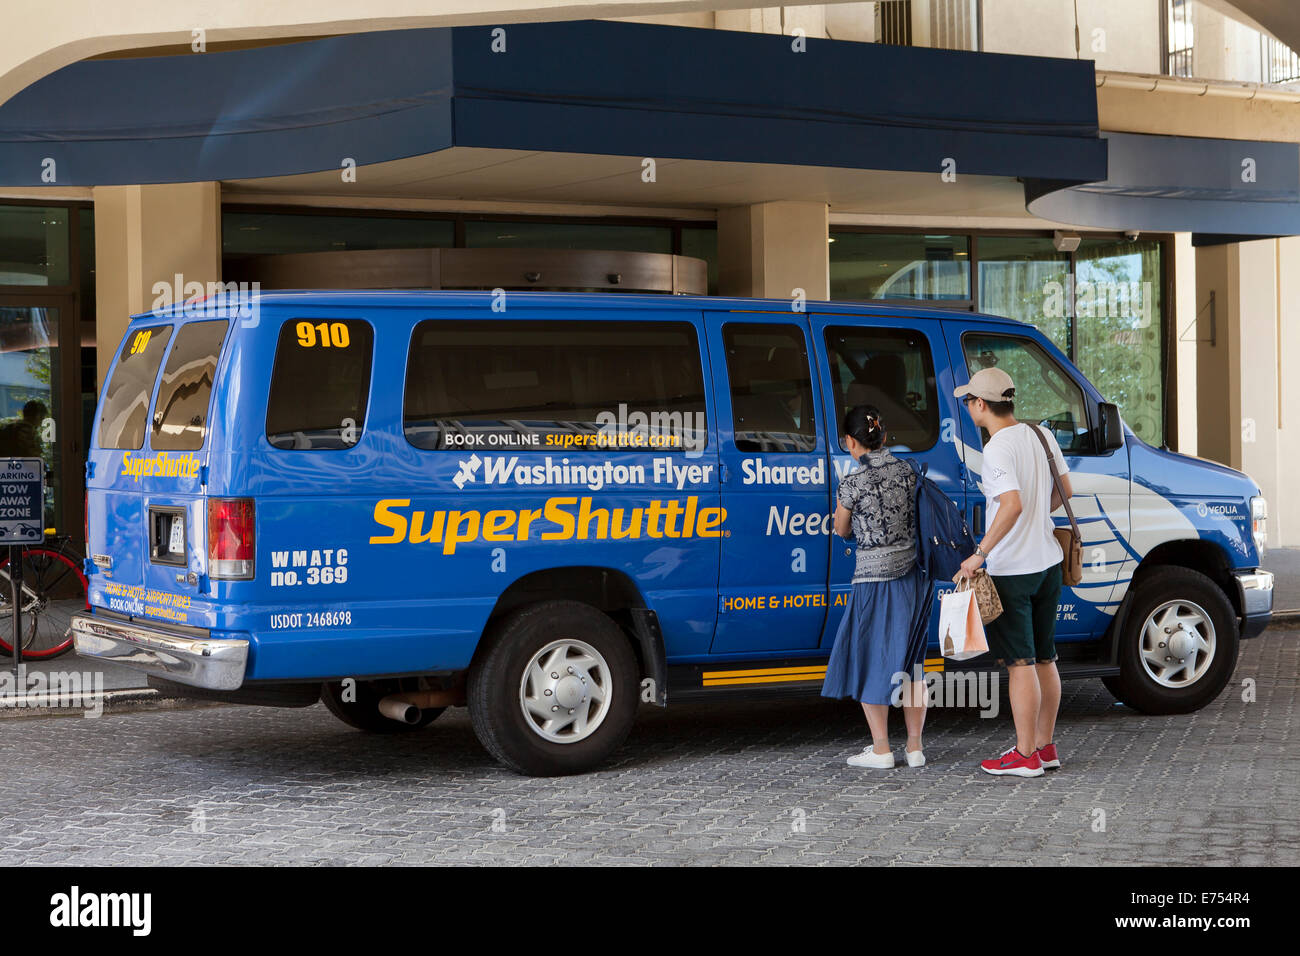 Aug 26,  · SuperShuttle, also known as the